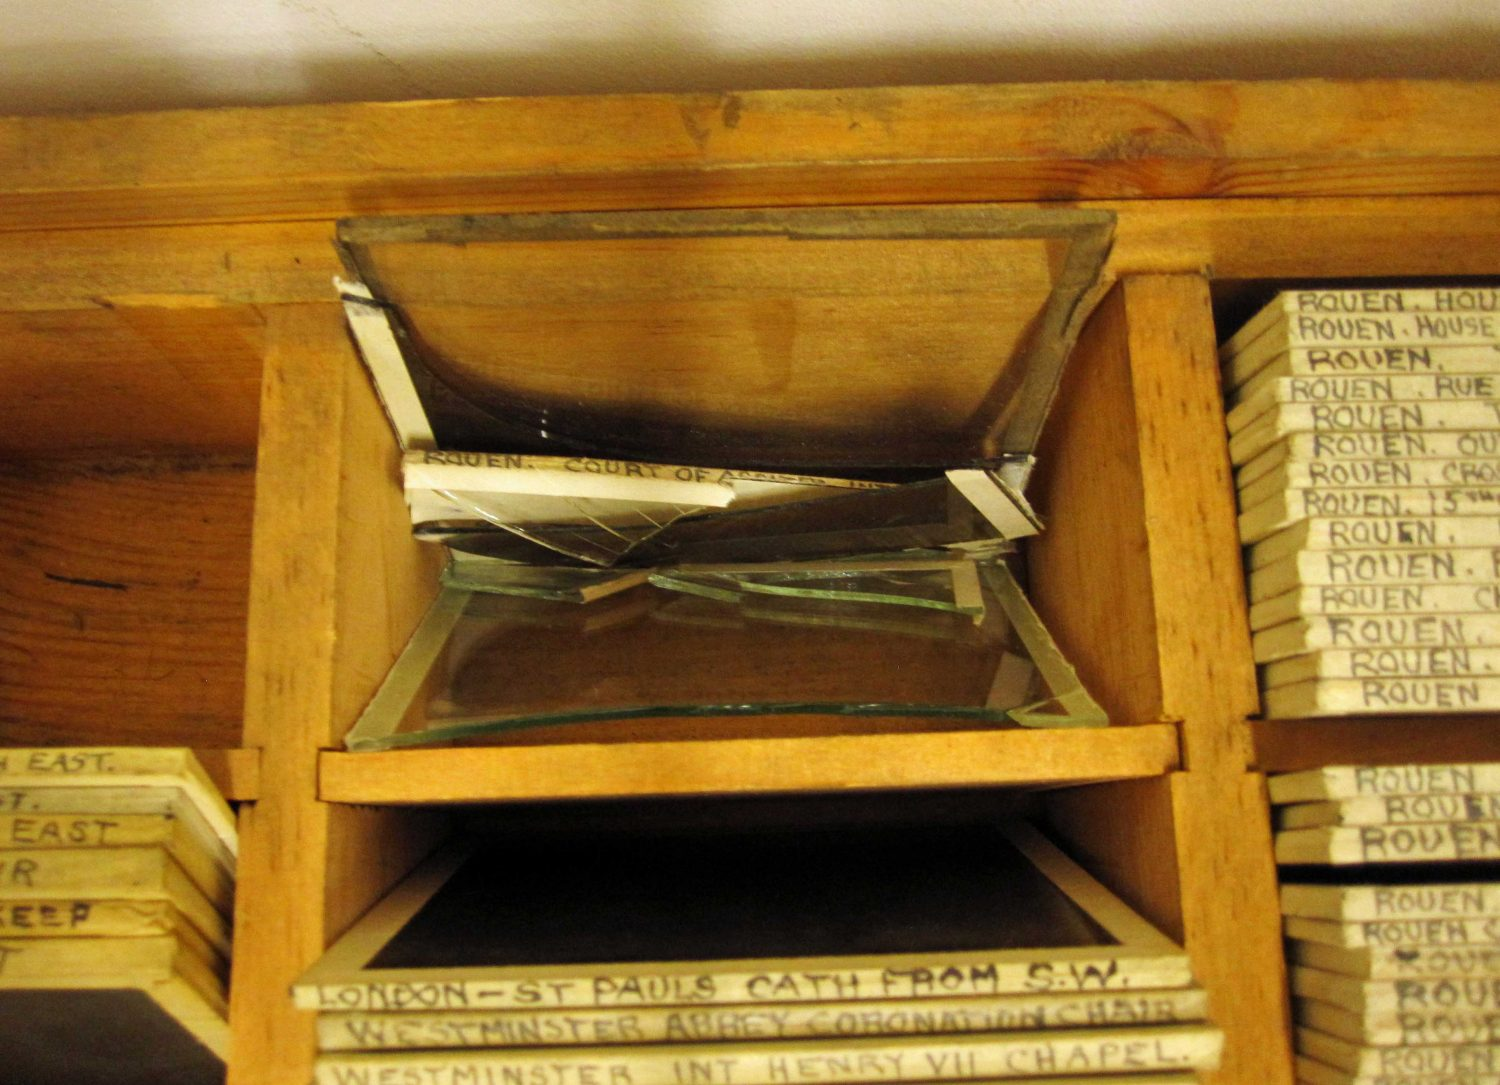 Wooden drawer with square glass slides